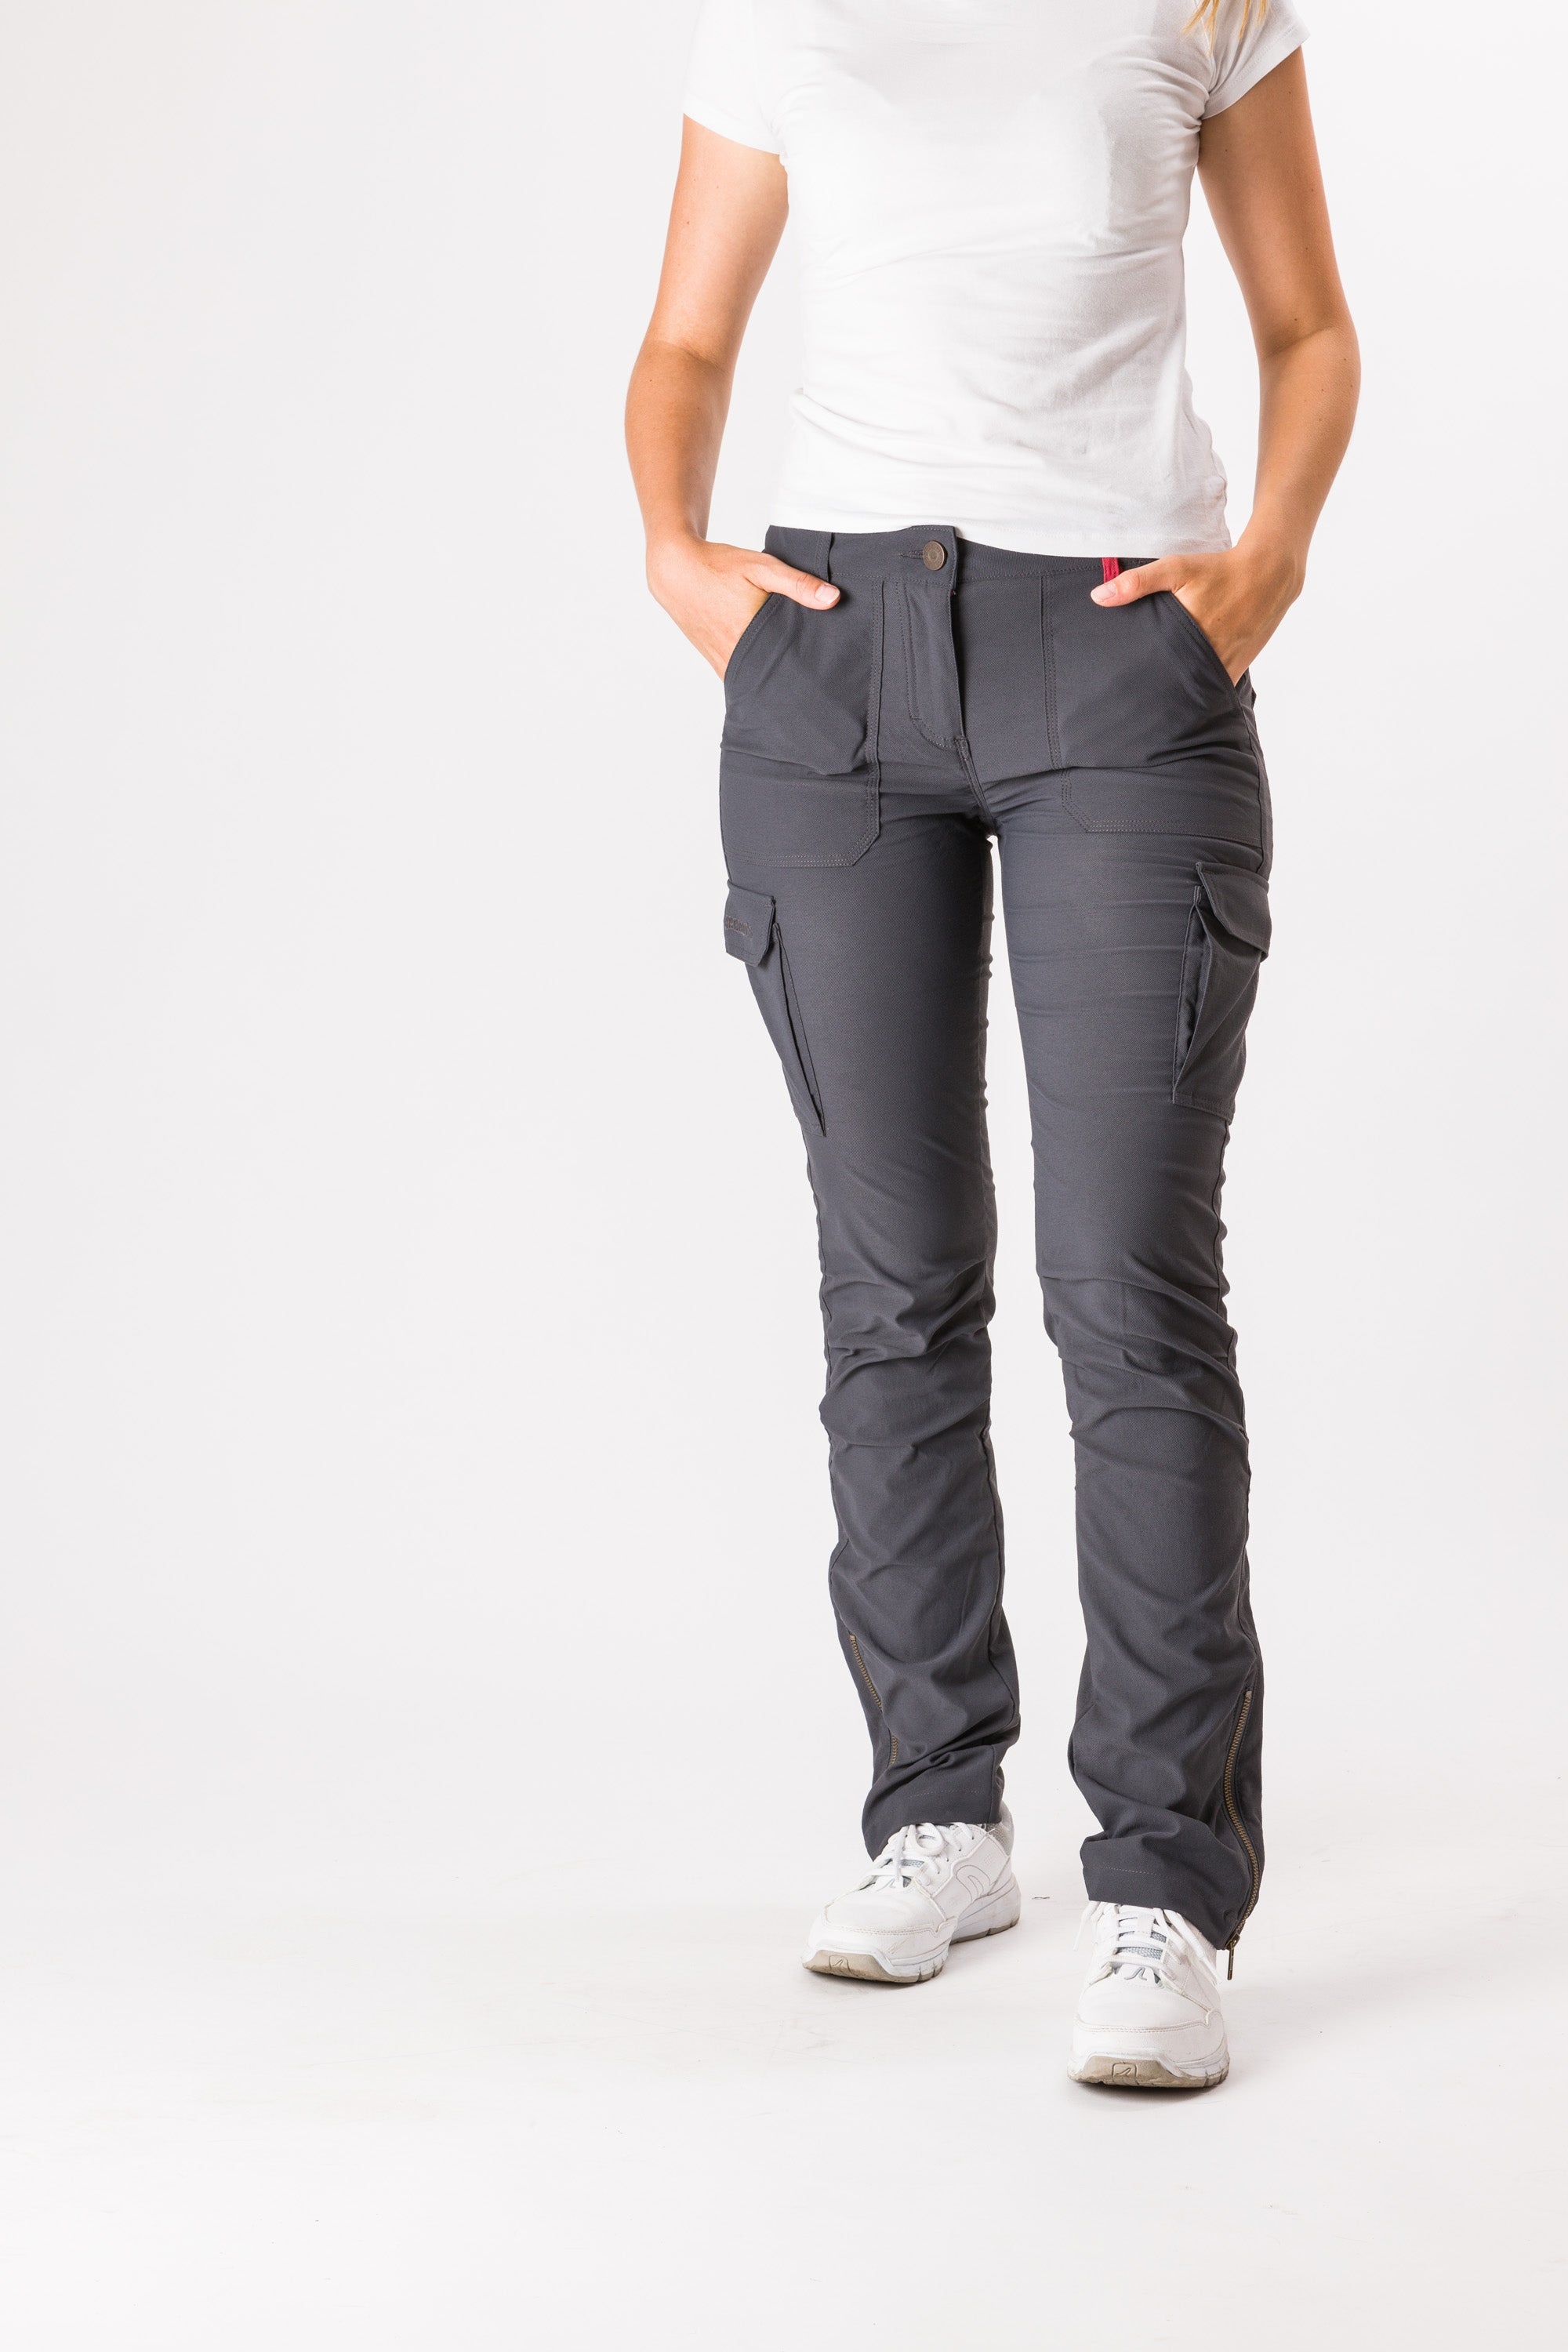 PARIS Cargo Pants BASIC